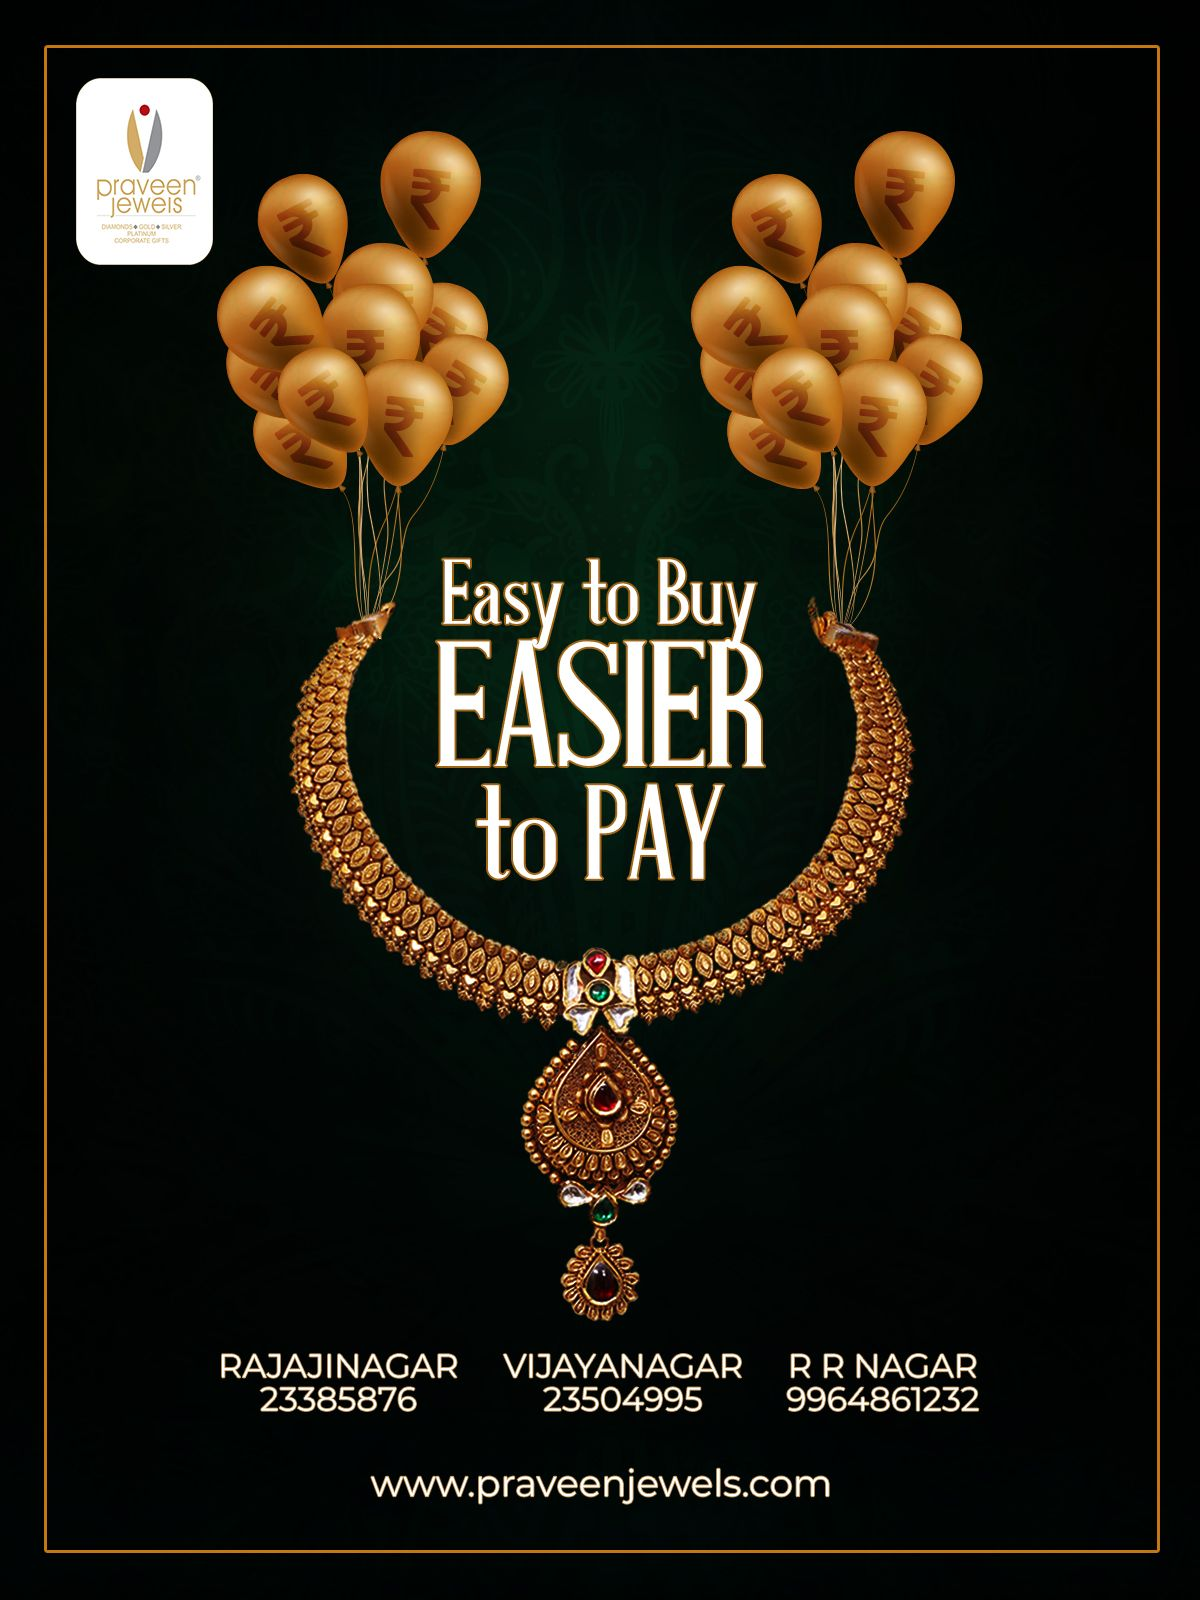 Celebrate Every Moment That Comes Your Way With Praveen Jewelers Buy Now Pay Later Emi Option On Gold Jeweller Buy Gold Jewelry Silver Jewelry Gifts Jewelry